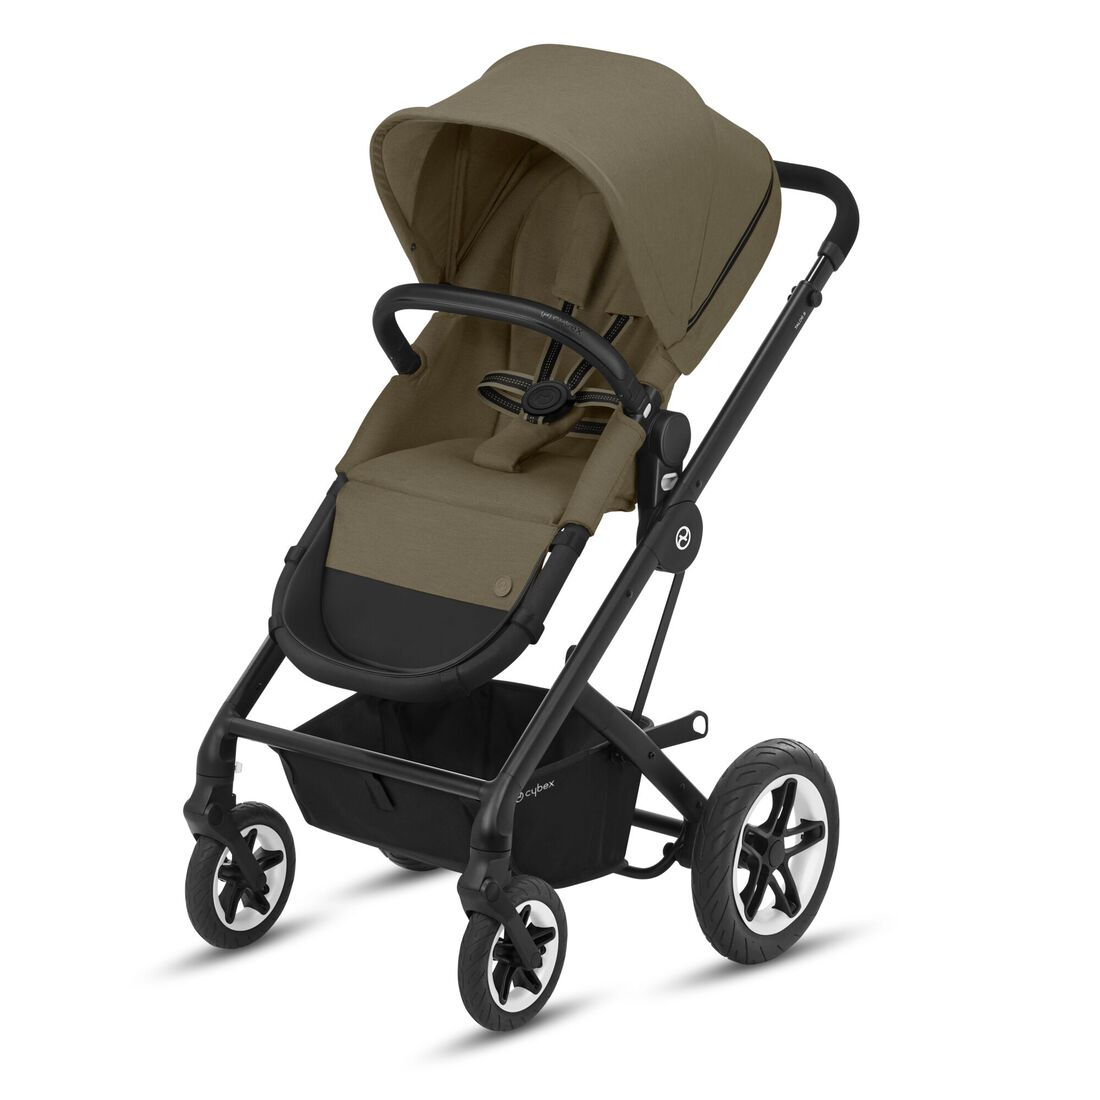 CYBEX Talos S 2-in-1 - Classic Beige in Classic Beige large image number 1